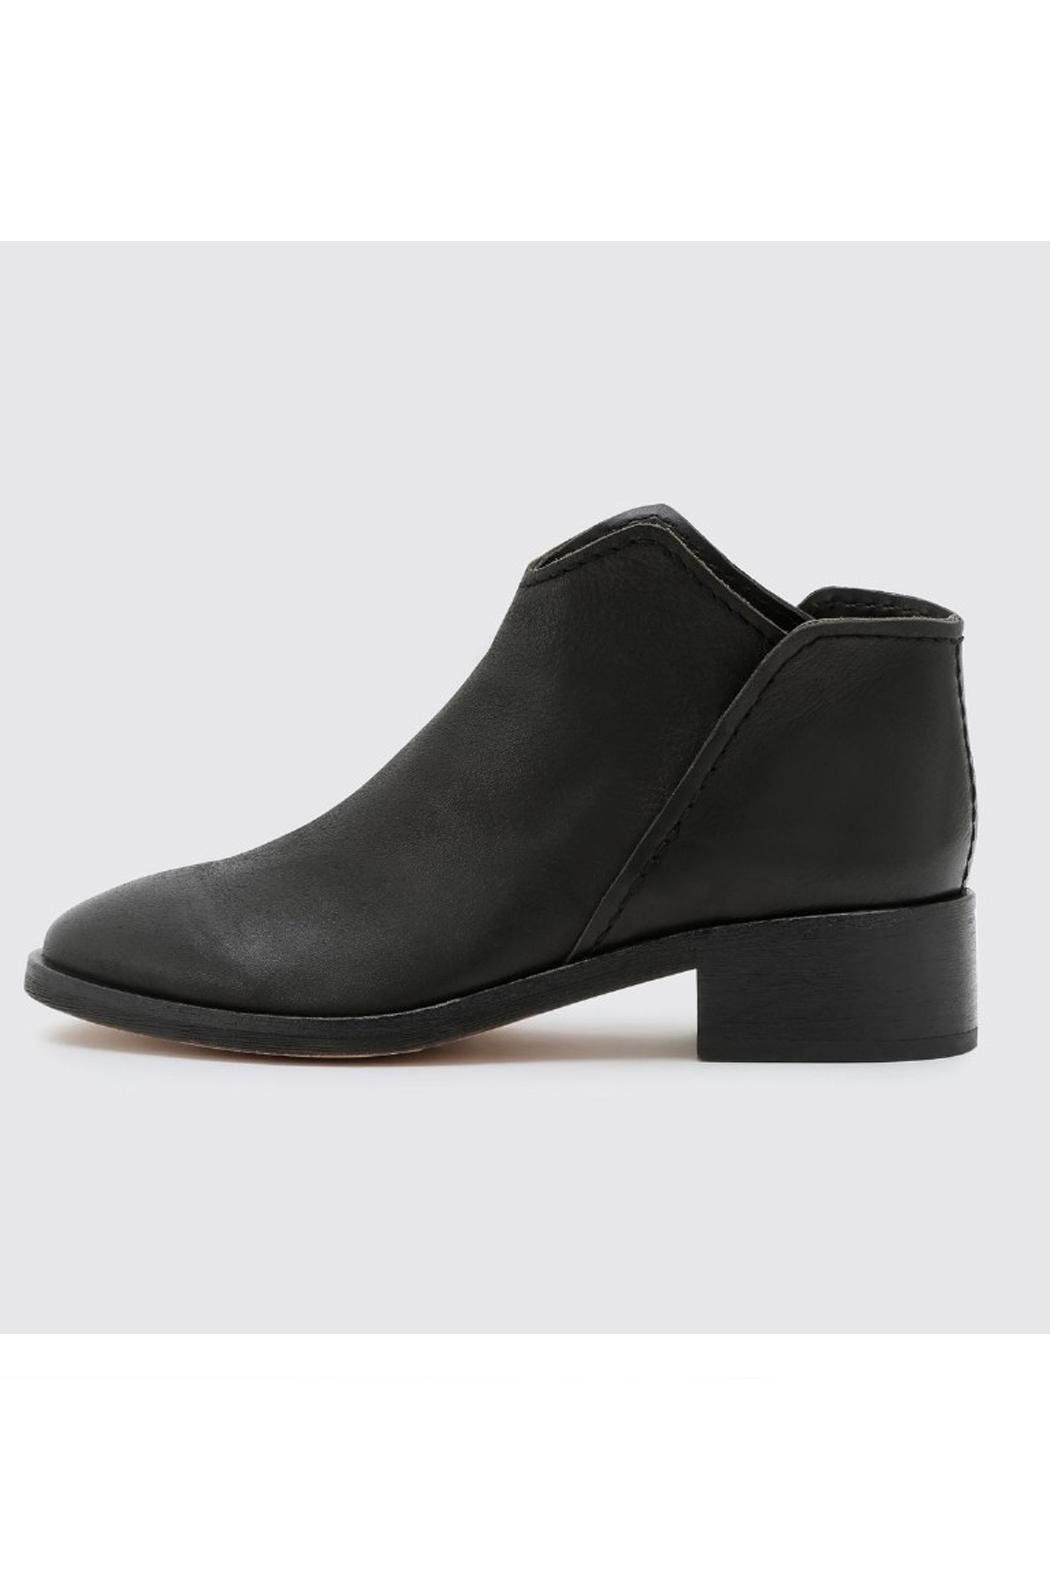 Dolce Vita Black Leather Bootie - Main Image